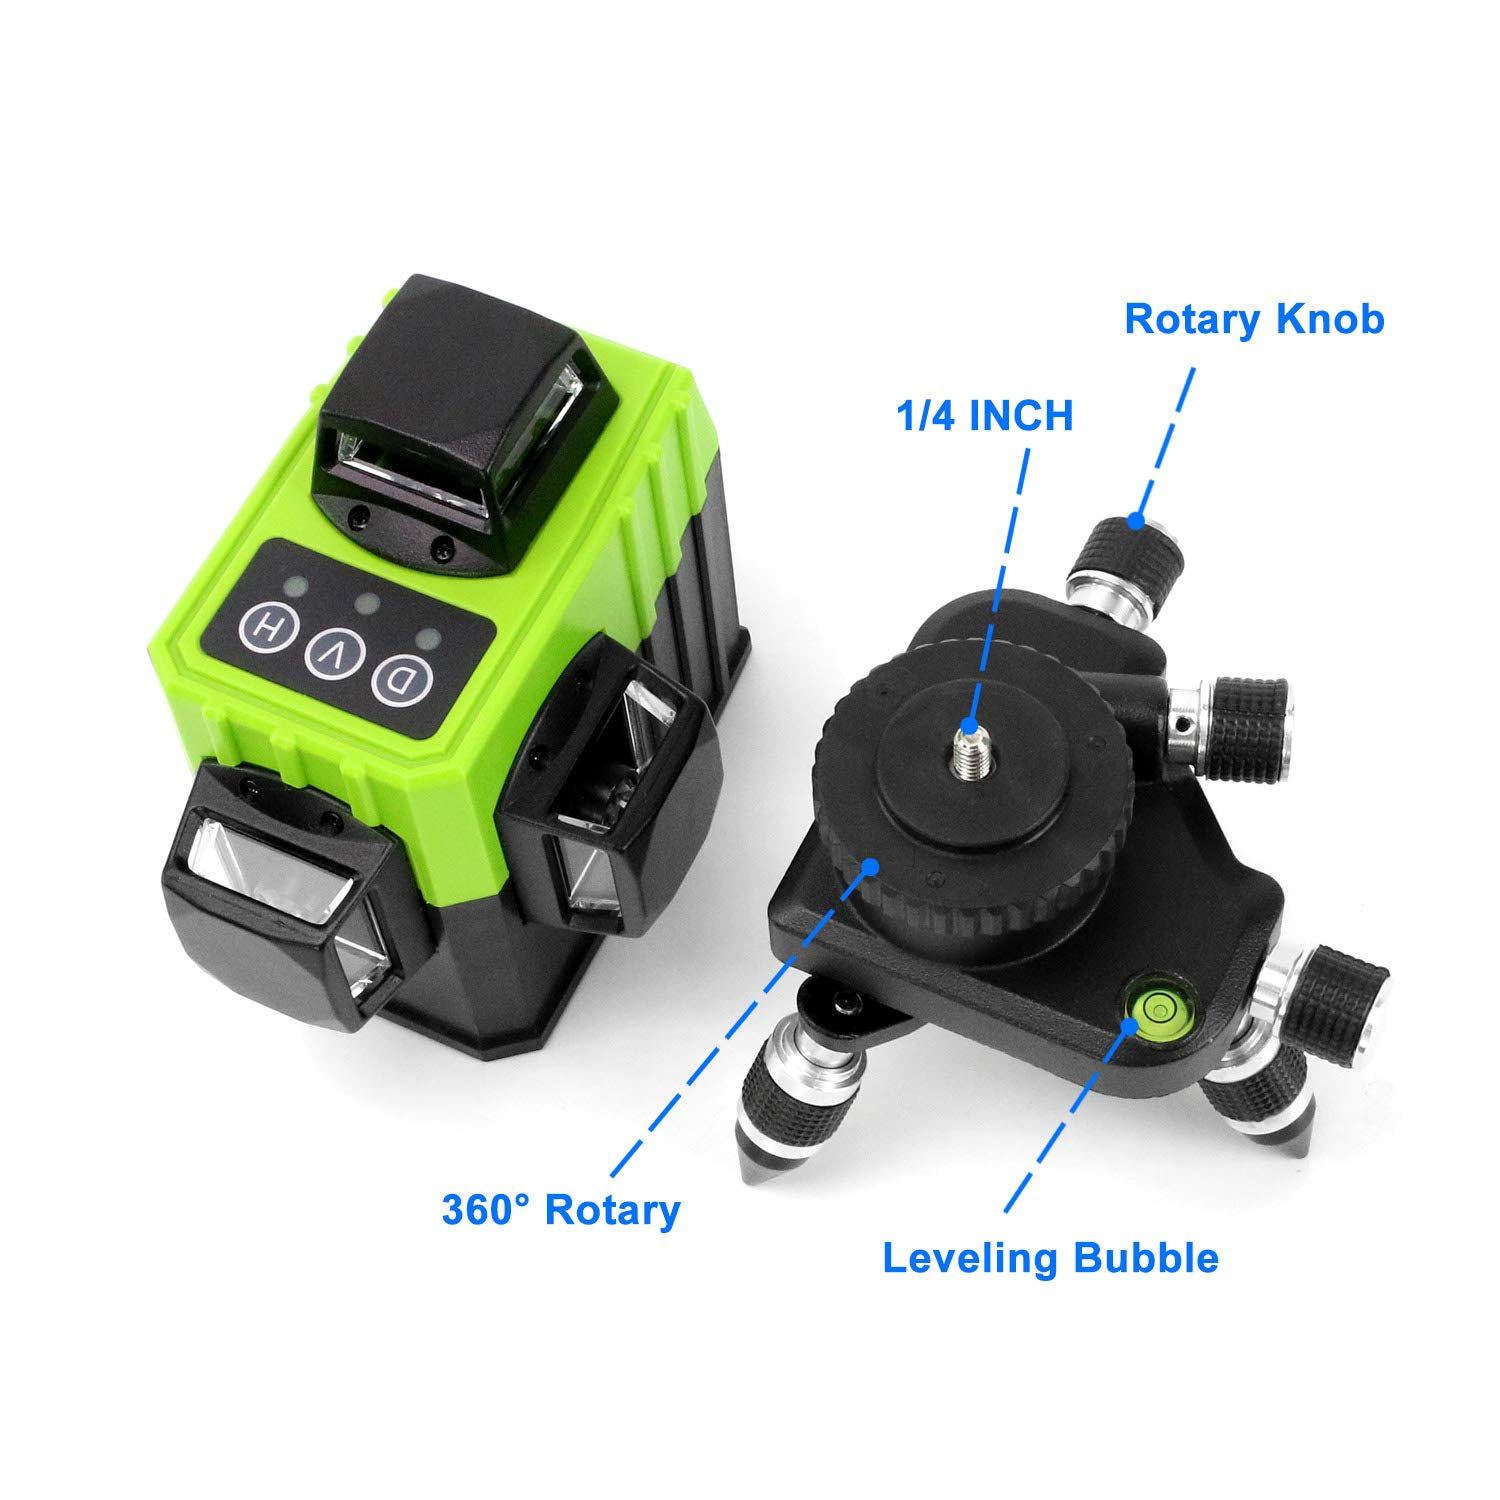 Dingchao Self-Leveling Three-Plane 3 x 360 Green Line Laser Level,with Micro-Adjust / 360 Degree Pivoting Base, Hard Carrying Case,Power Plug Adapter,Multi-functional Laser Leveler Layout Laser Tools by DINGCHAO (Image #6)